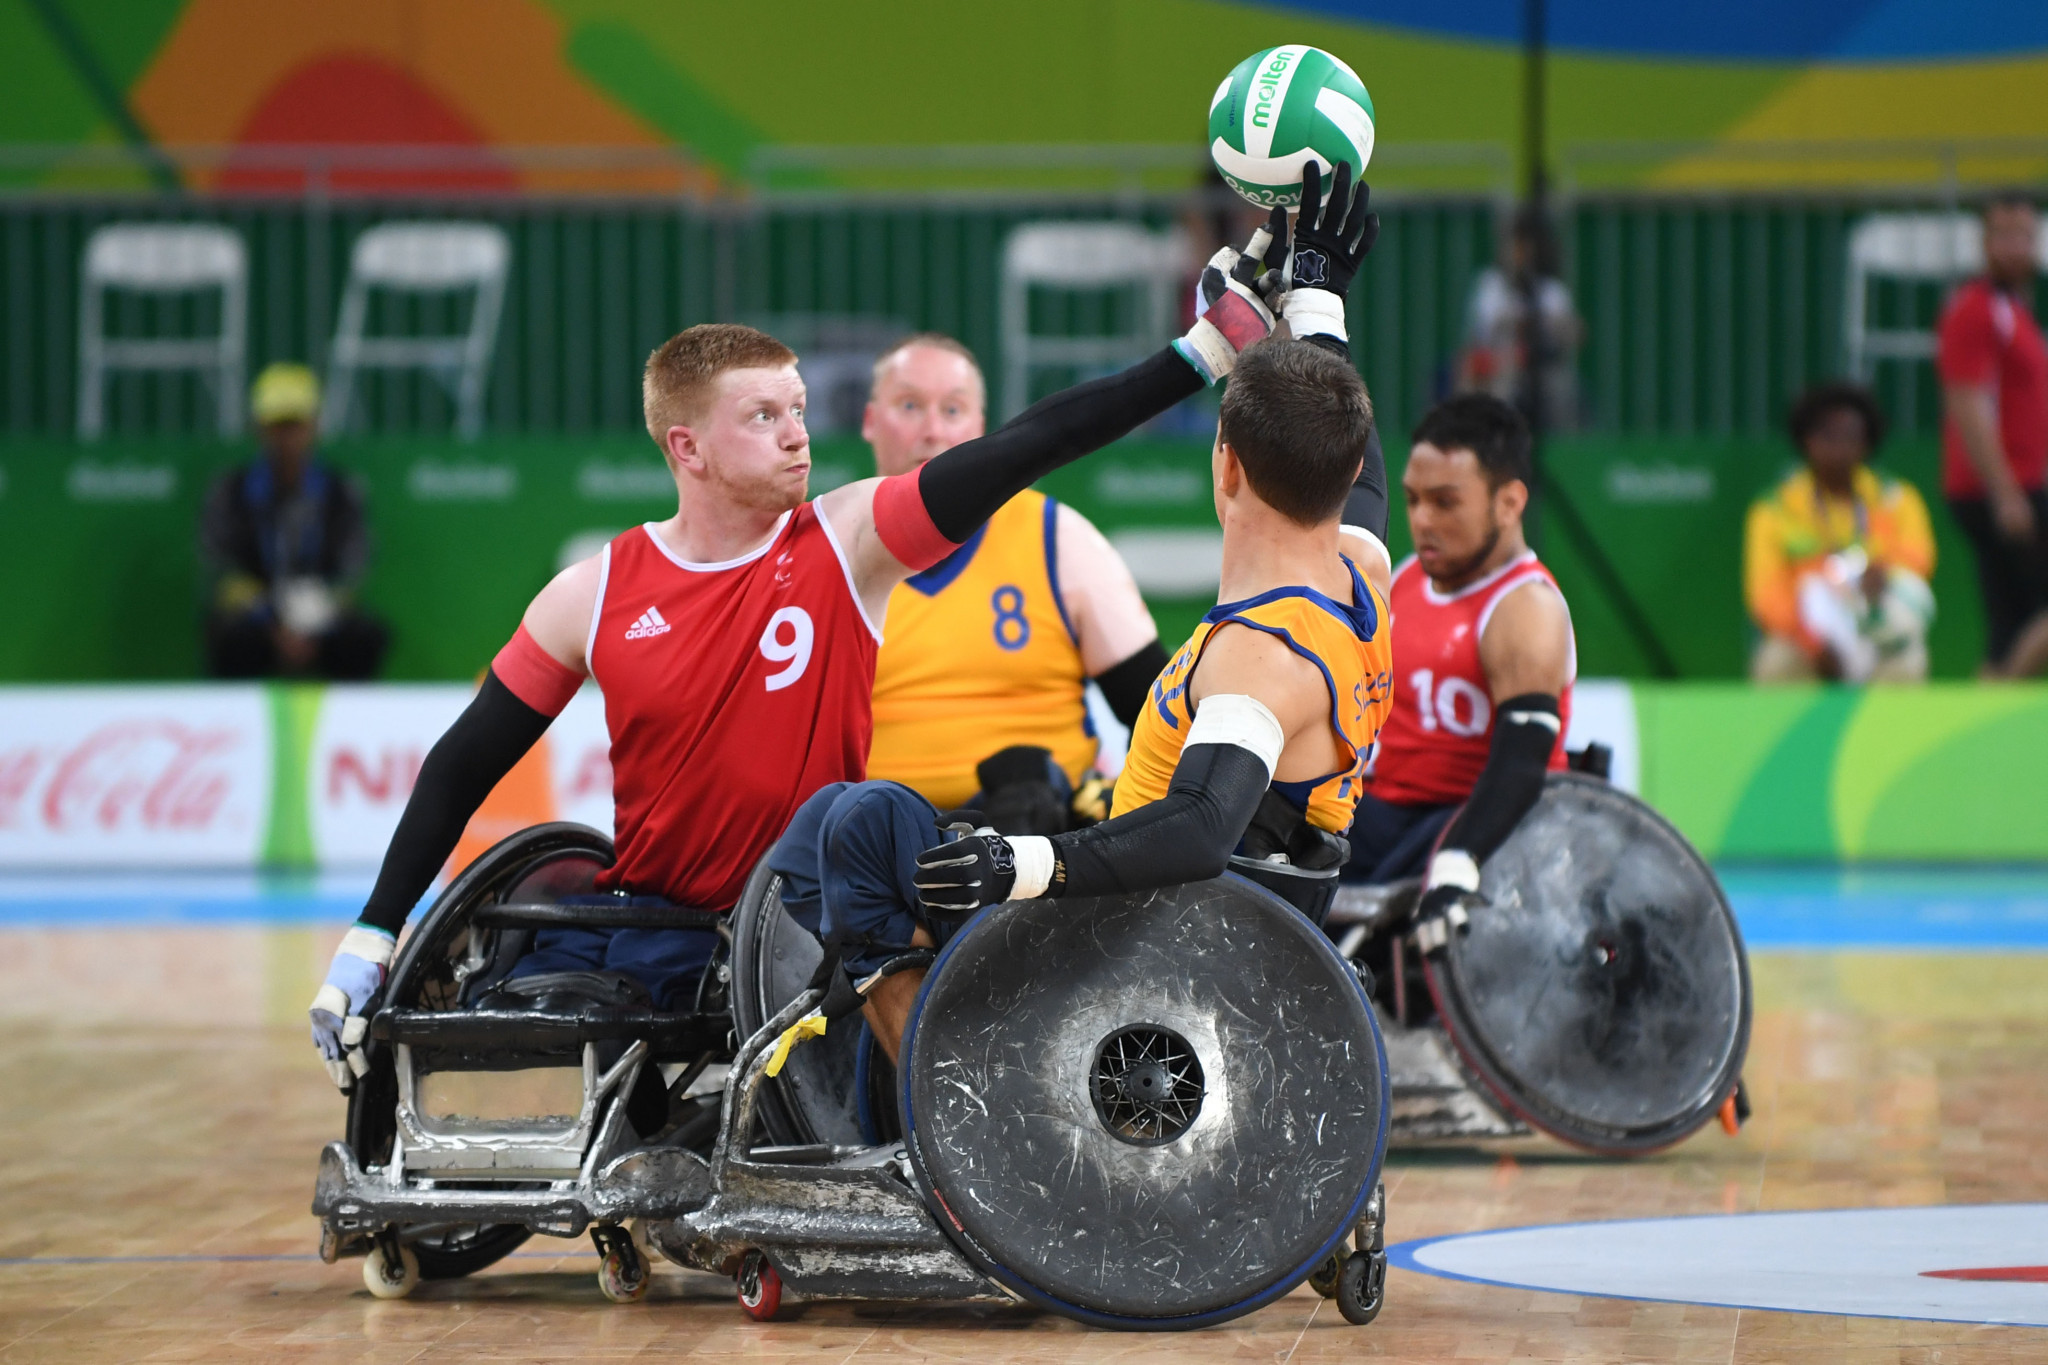 Britain's best finish in wheelchair rugby at the Paralympics is fourth - achieved on three occasions ©Getty Images